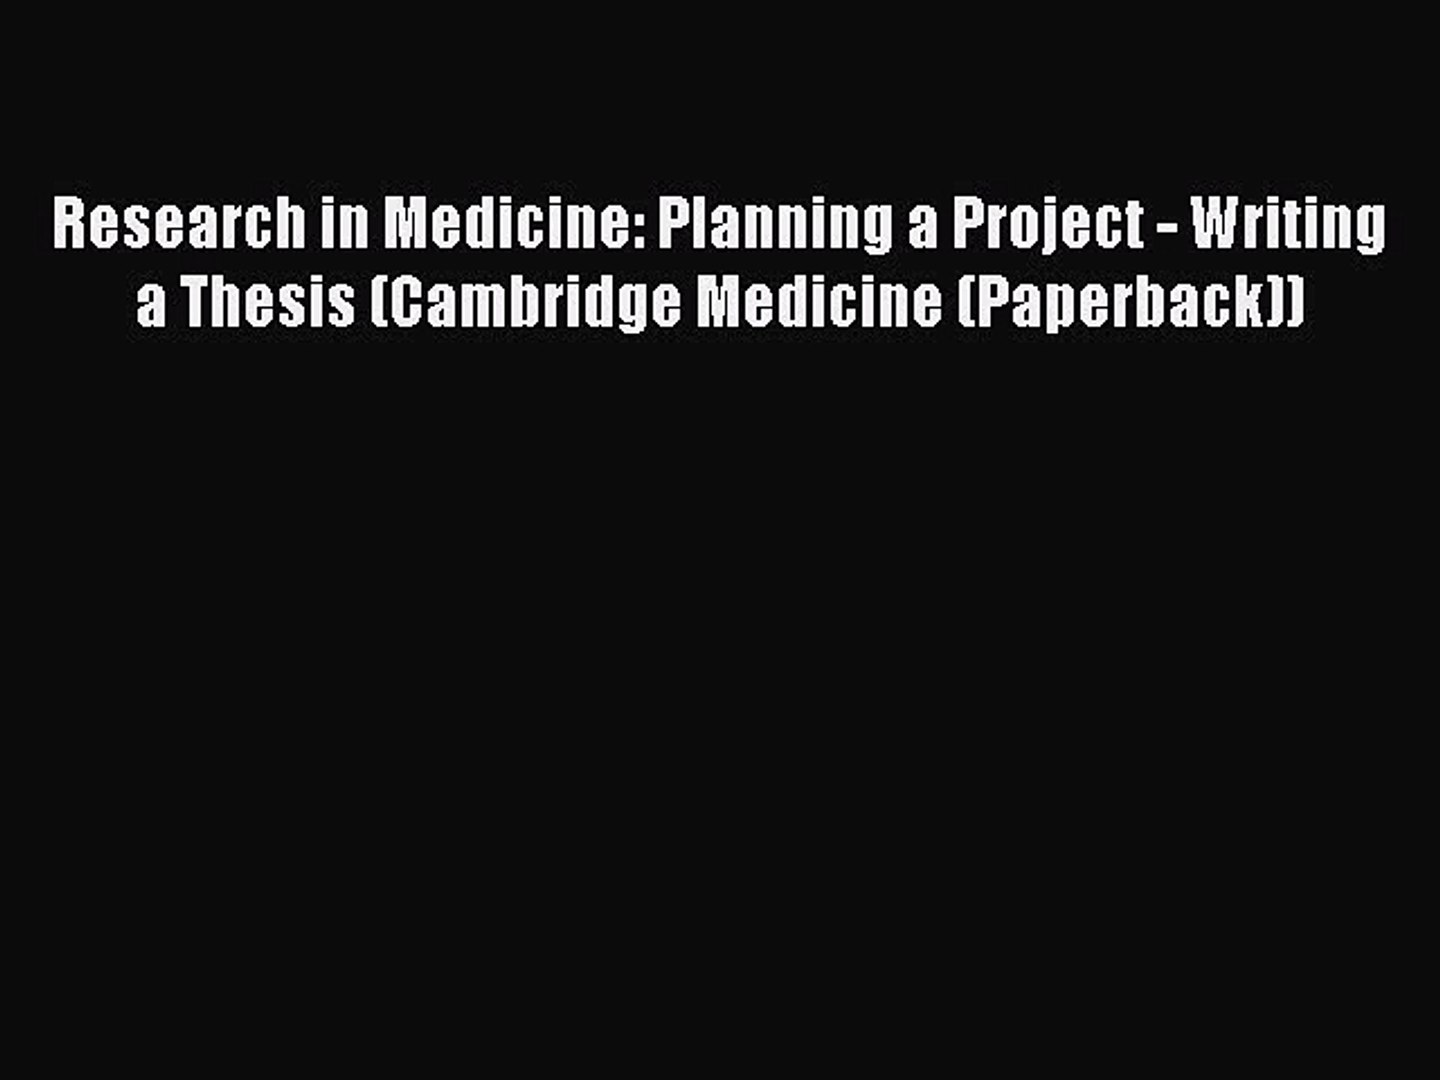 formulate a detailed plan for a research project